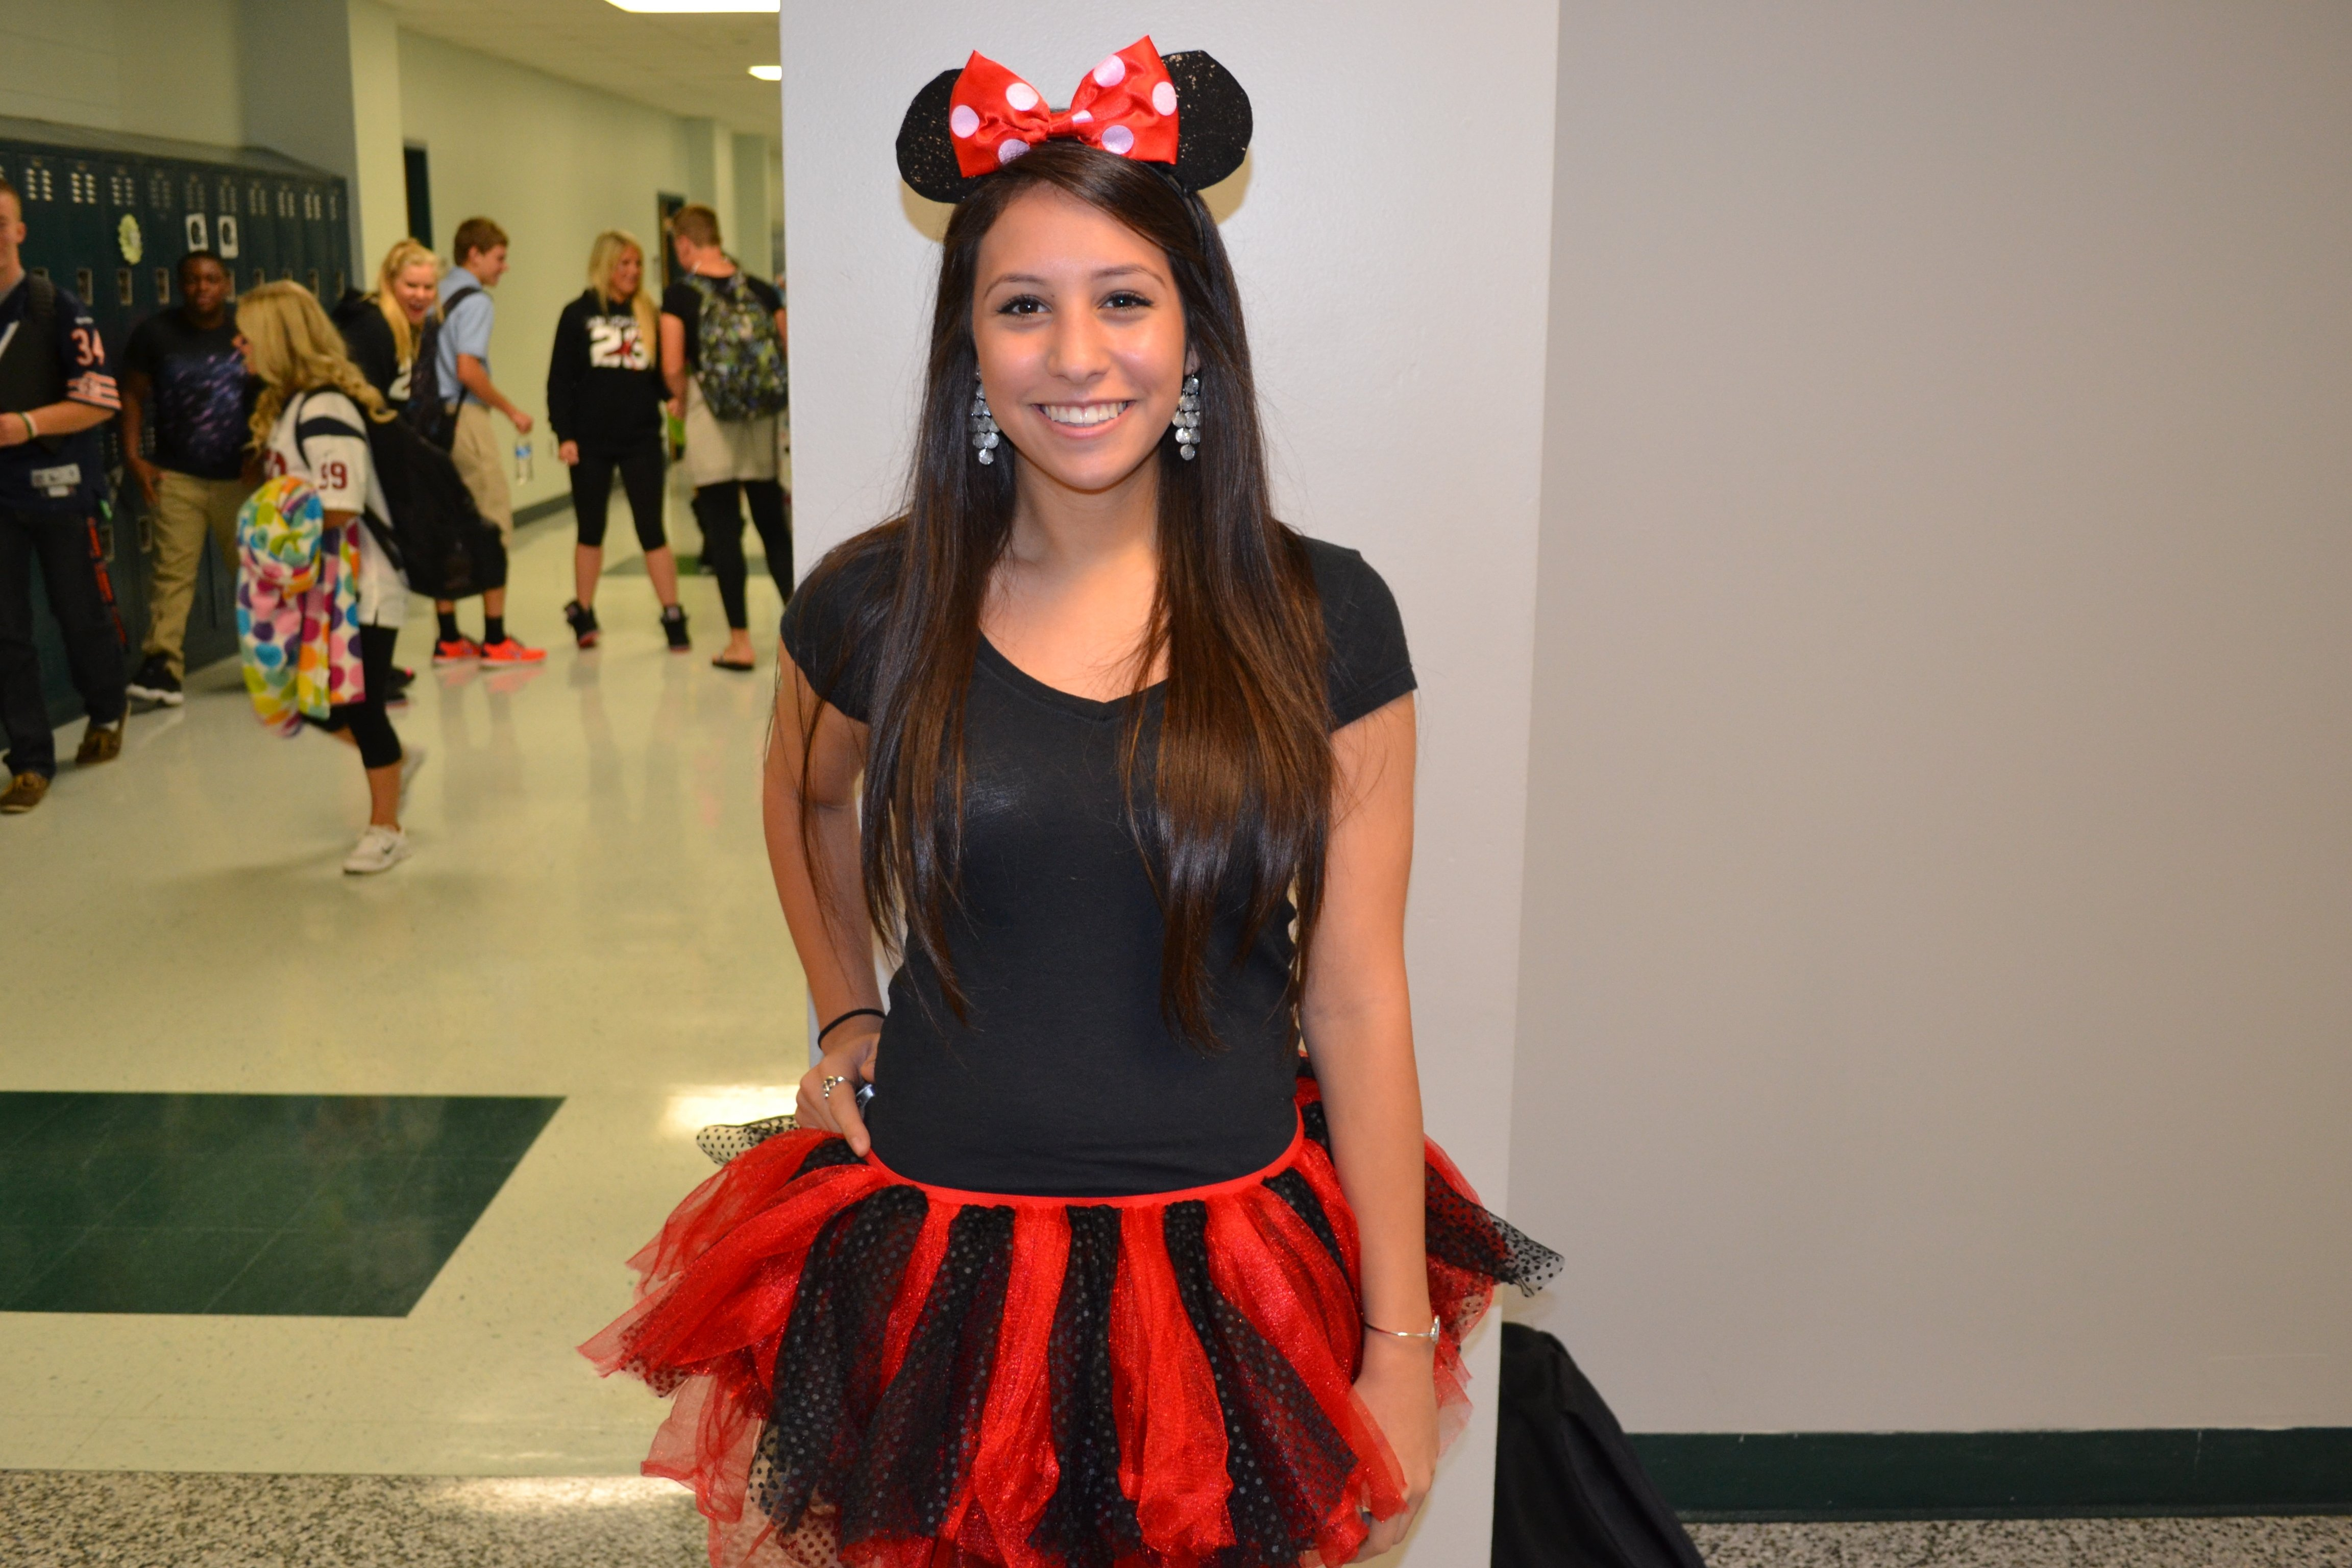 10 Great Celebrity Day Ideas For School celebrity character day high school homecoming ideas pinterest 1 2021